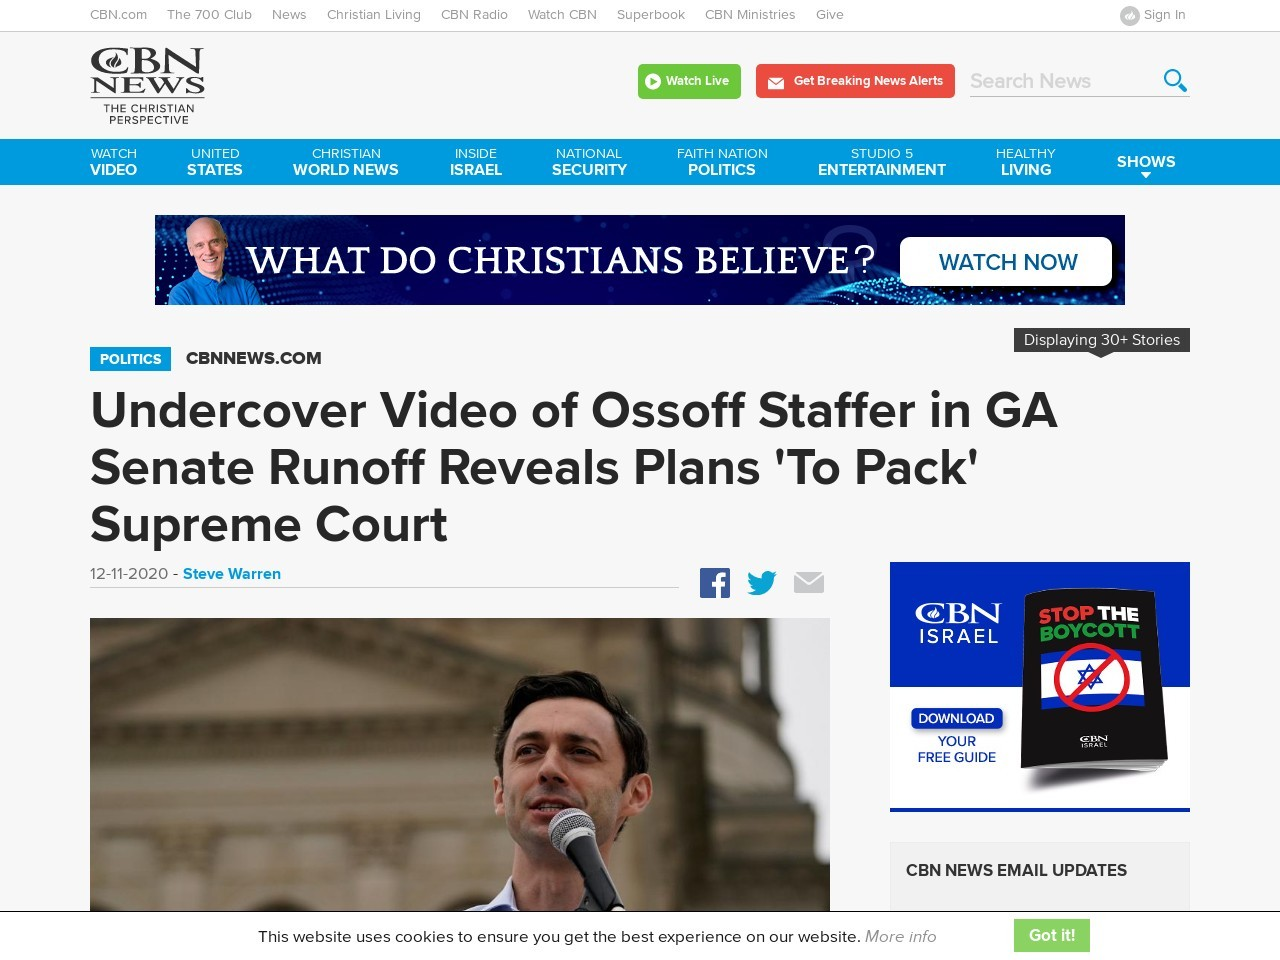 Undercover Video of Ossoff Staffer in GA Senate Runoff Reveals Plans 'To Pack' Supreme Court